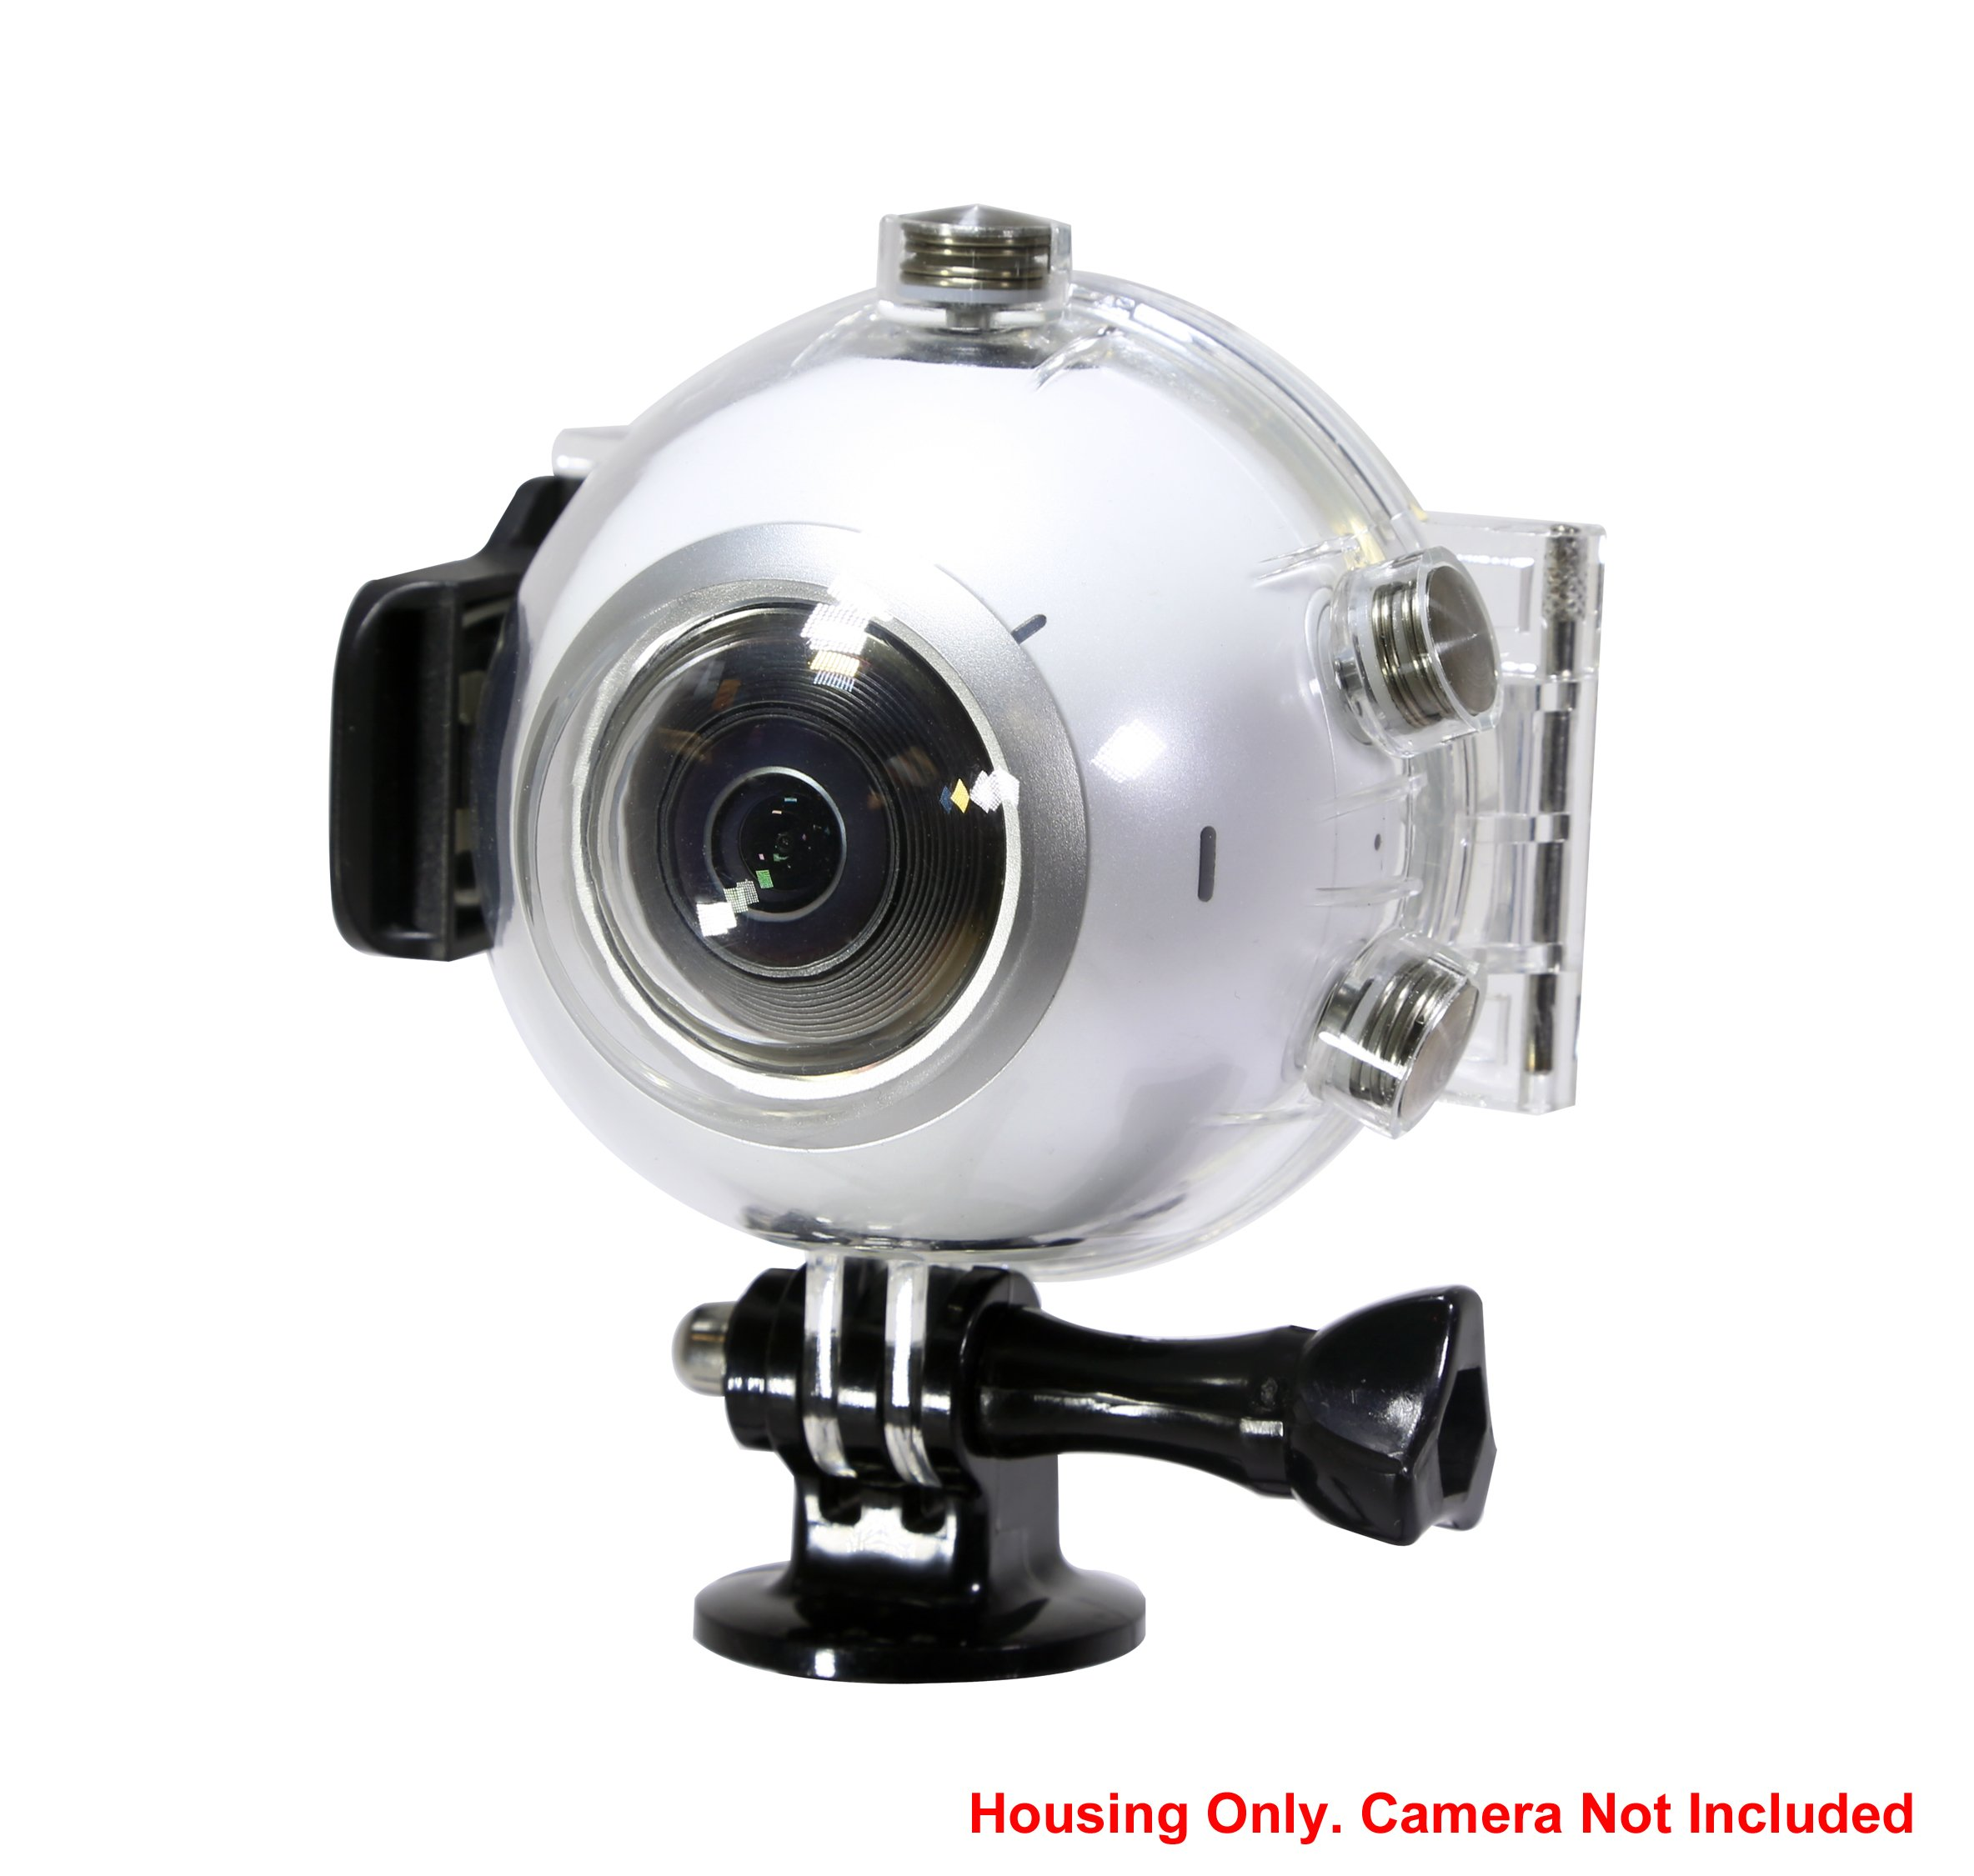 Underwater Housing Case for Samsung Gear 360 Camera (2016 V1 only) - NOT 2017 Version by VidPro